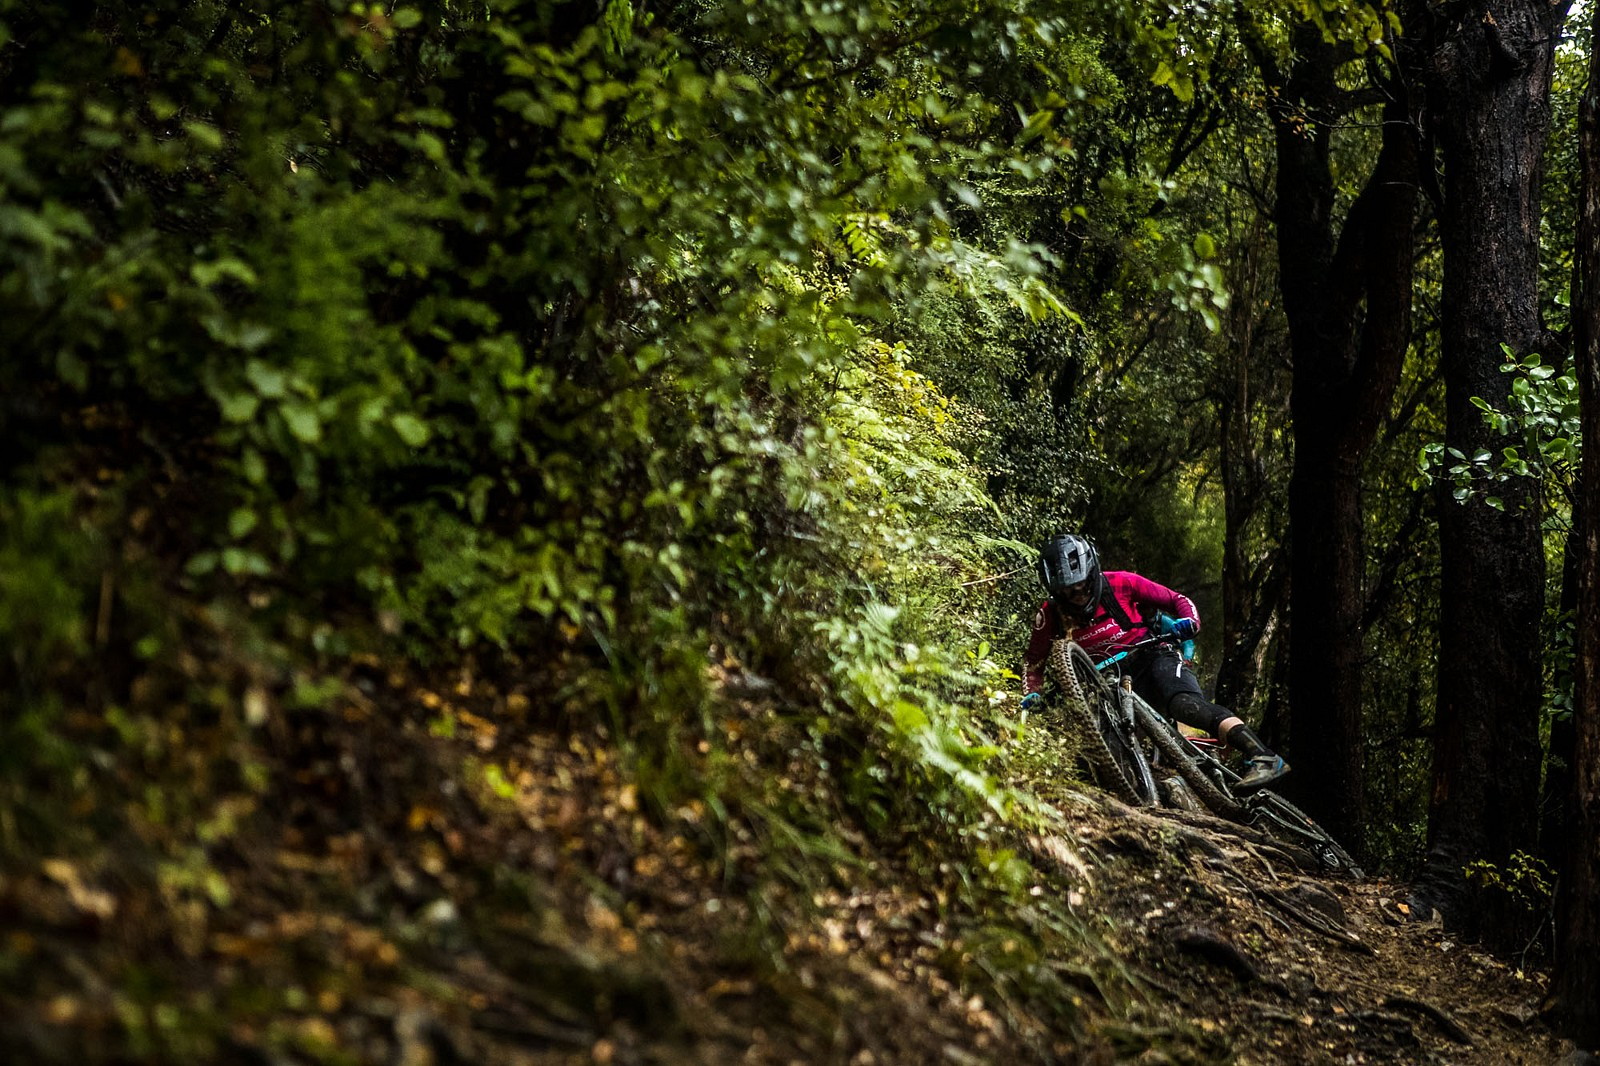 NZEnduro19 BB AS6I0439 - 2019 NZ Enduro Day 1 Photo Gallery - Mountain Biking Pictures - Vital MTB